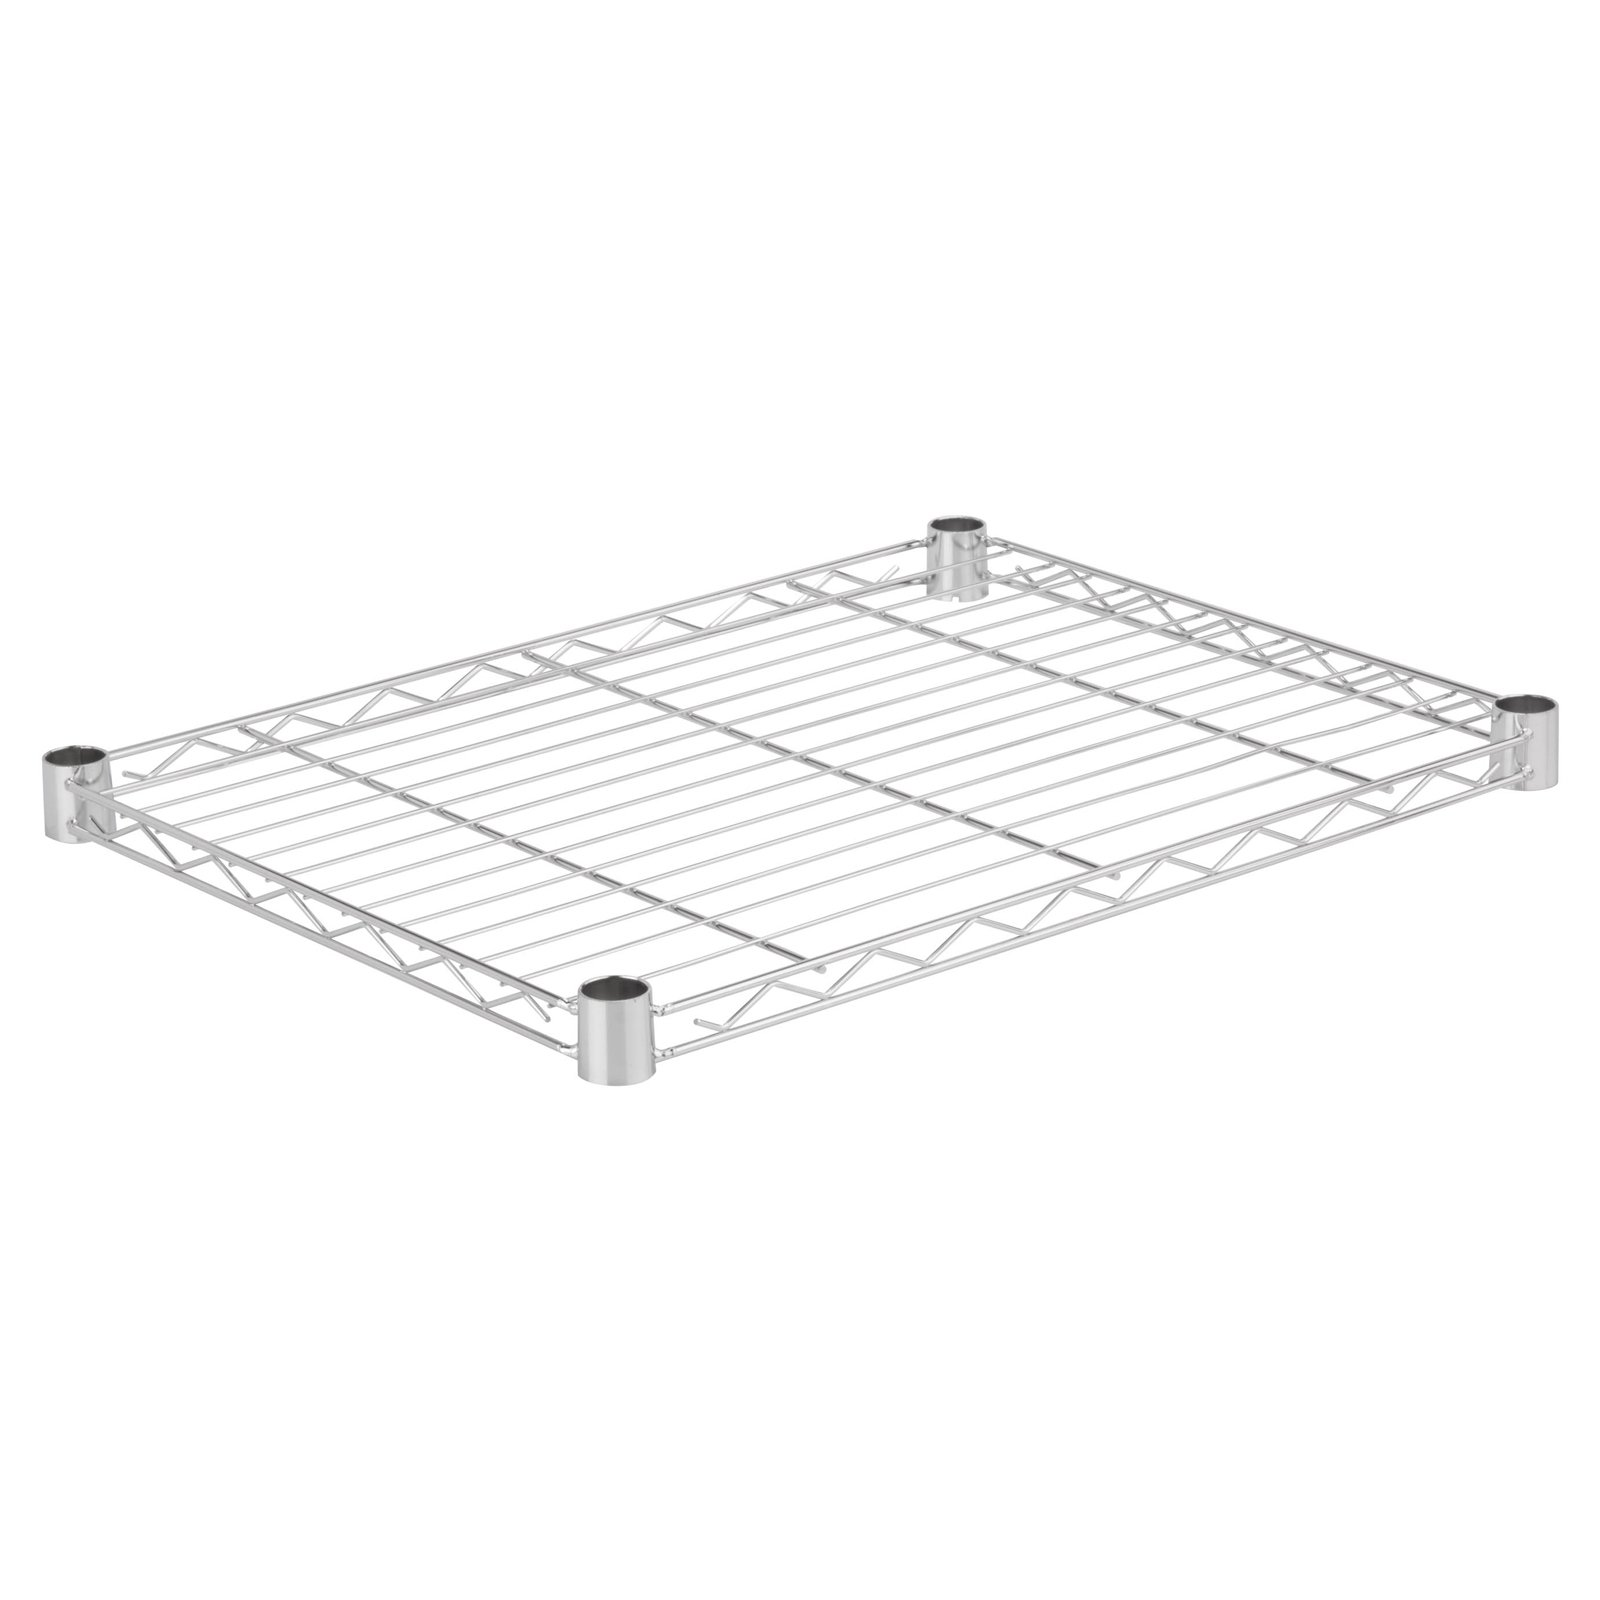 "Honey Can Do Steel Wire Shelf, 350 Lbs, 14"" x 24"", Chrome"